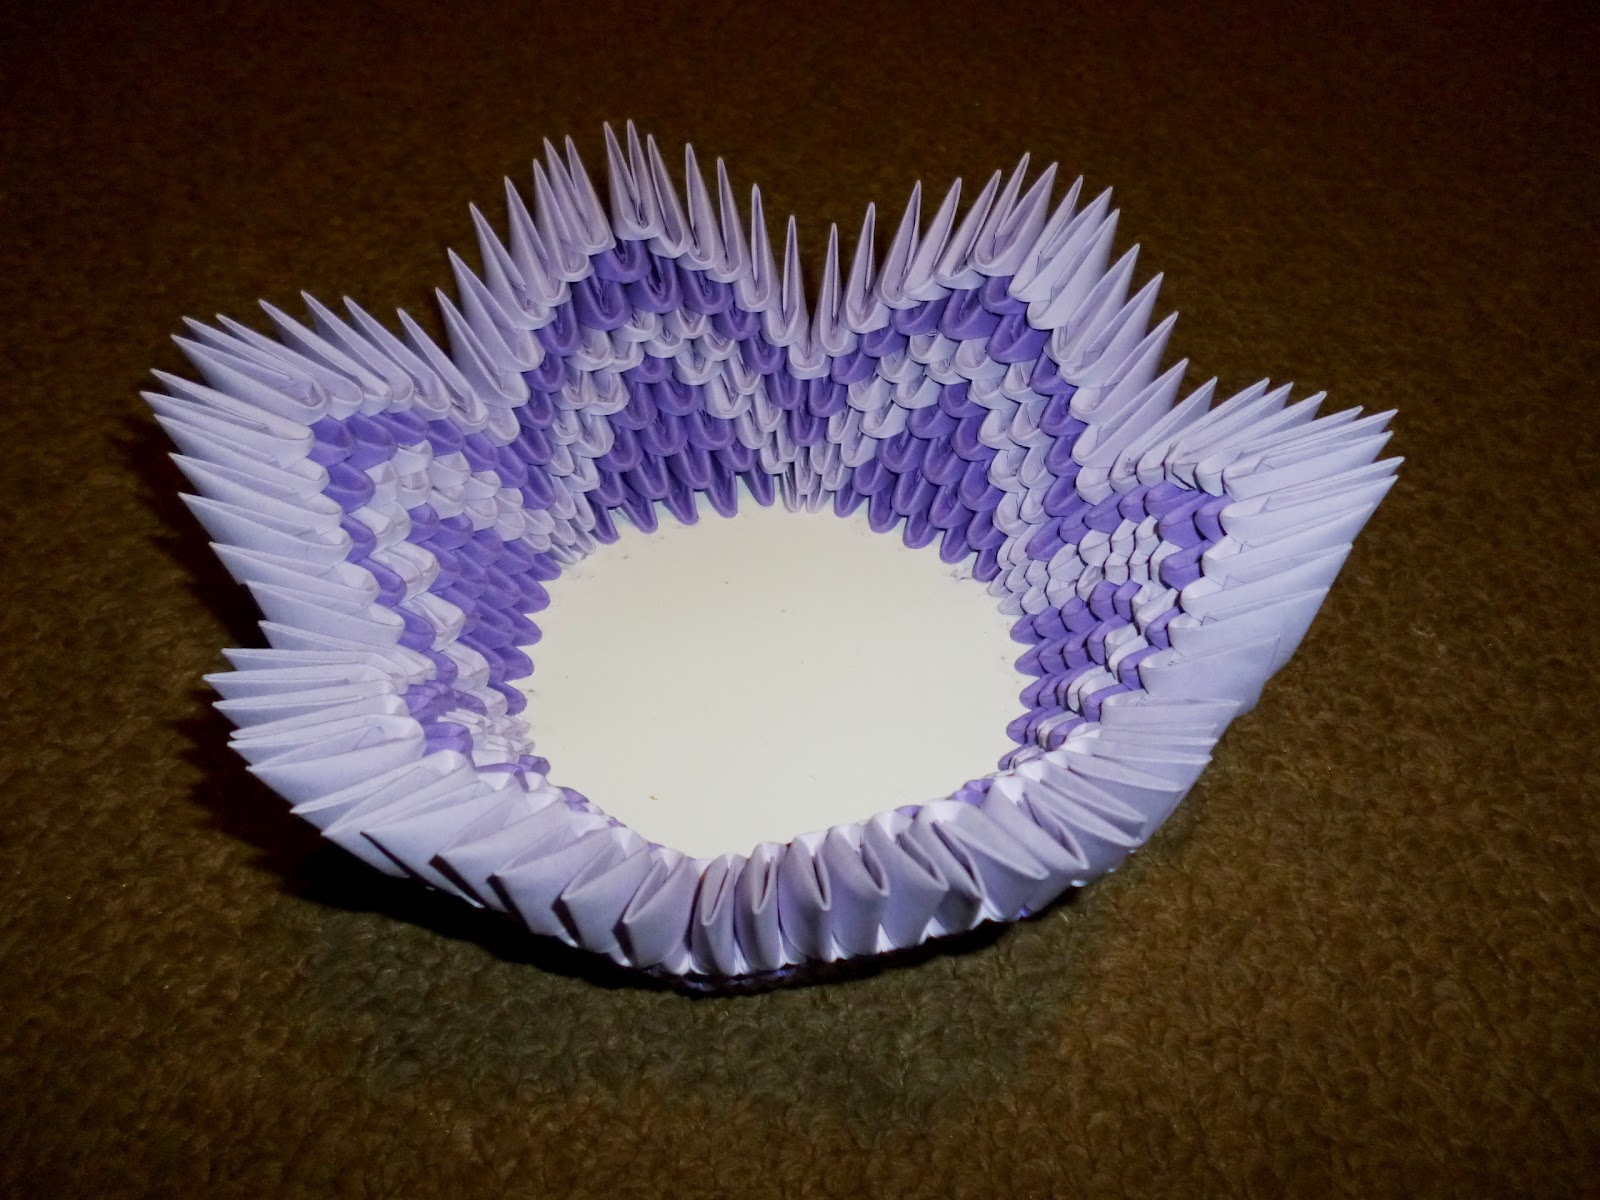 3d origami cake tutorial Images - Frompo